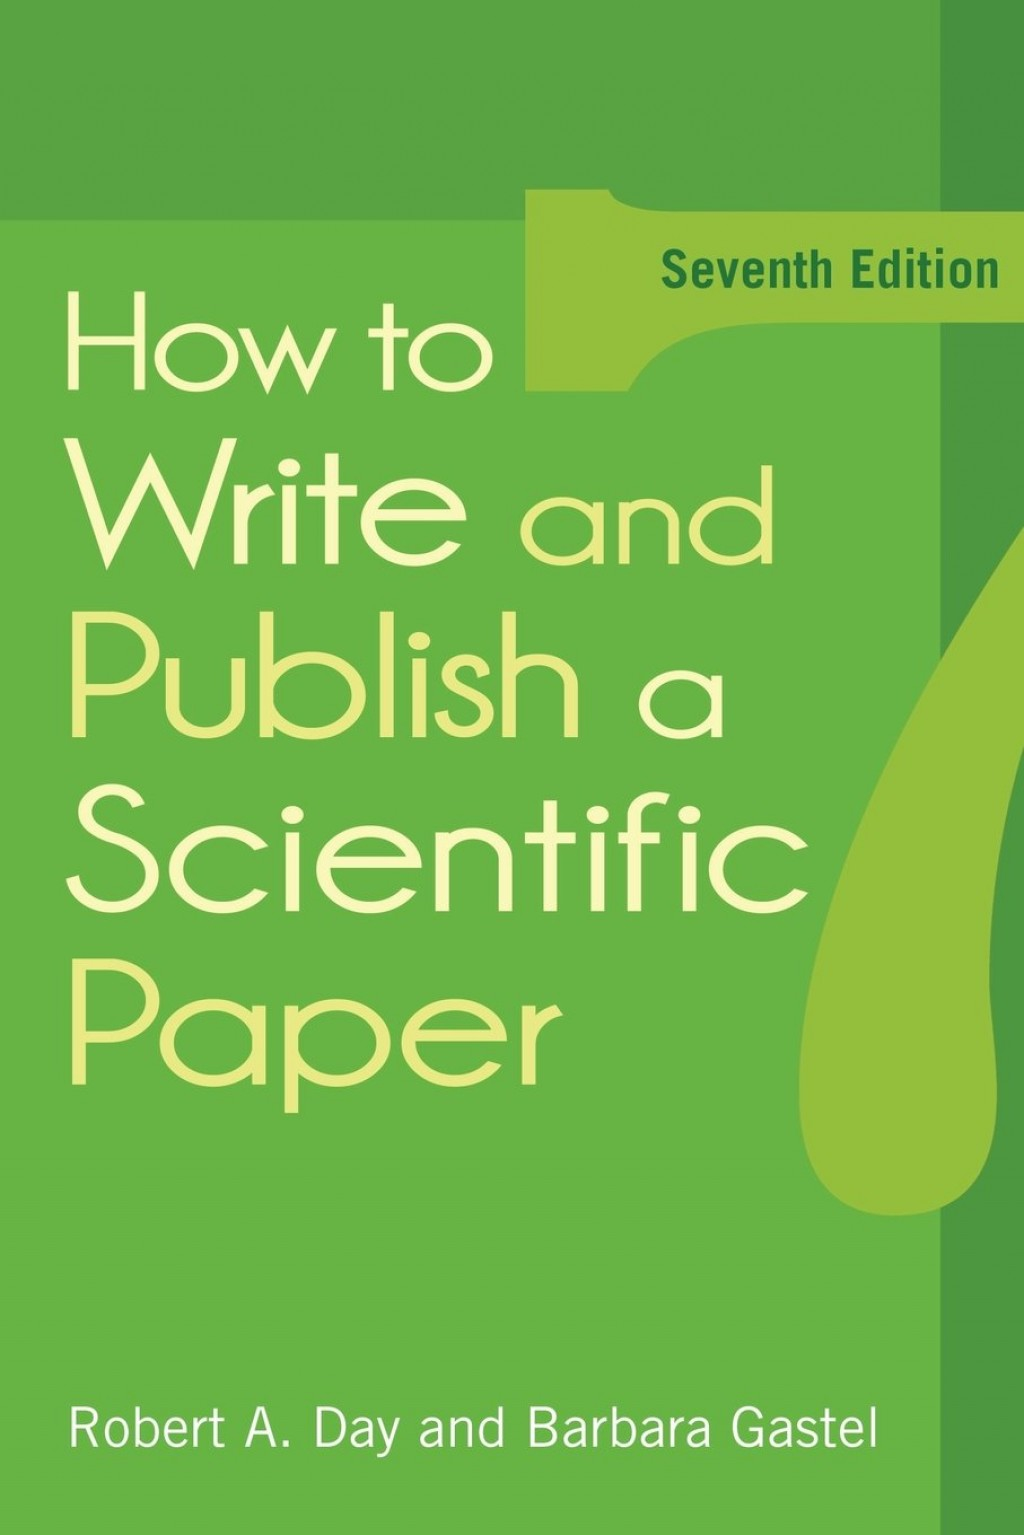 001 Research Paper 61akxkcqzal How To Write And Publish Scientific Surprising A Pdf Large